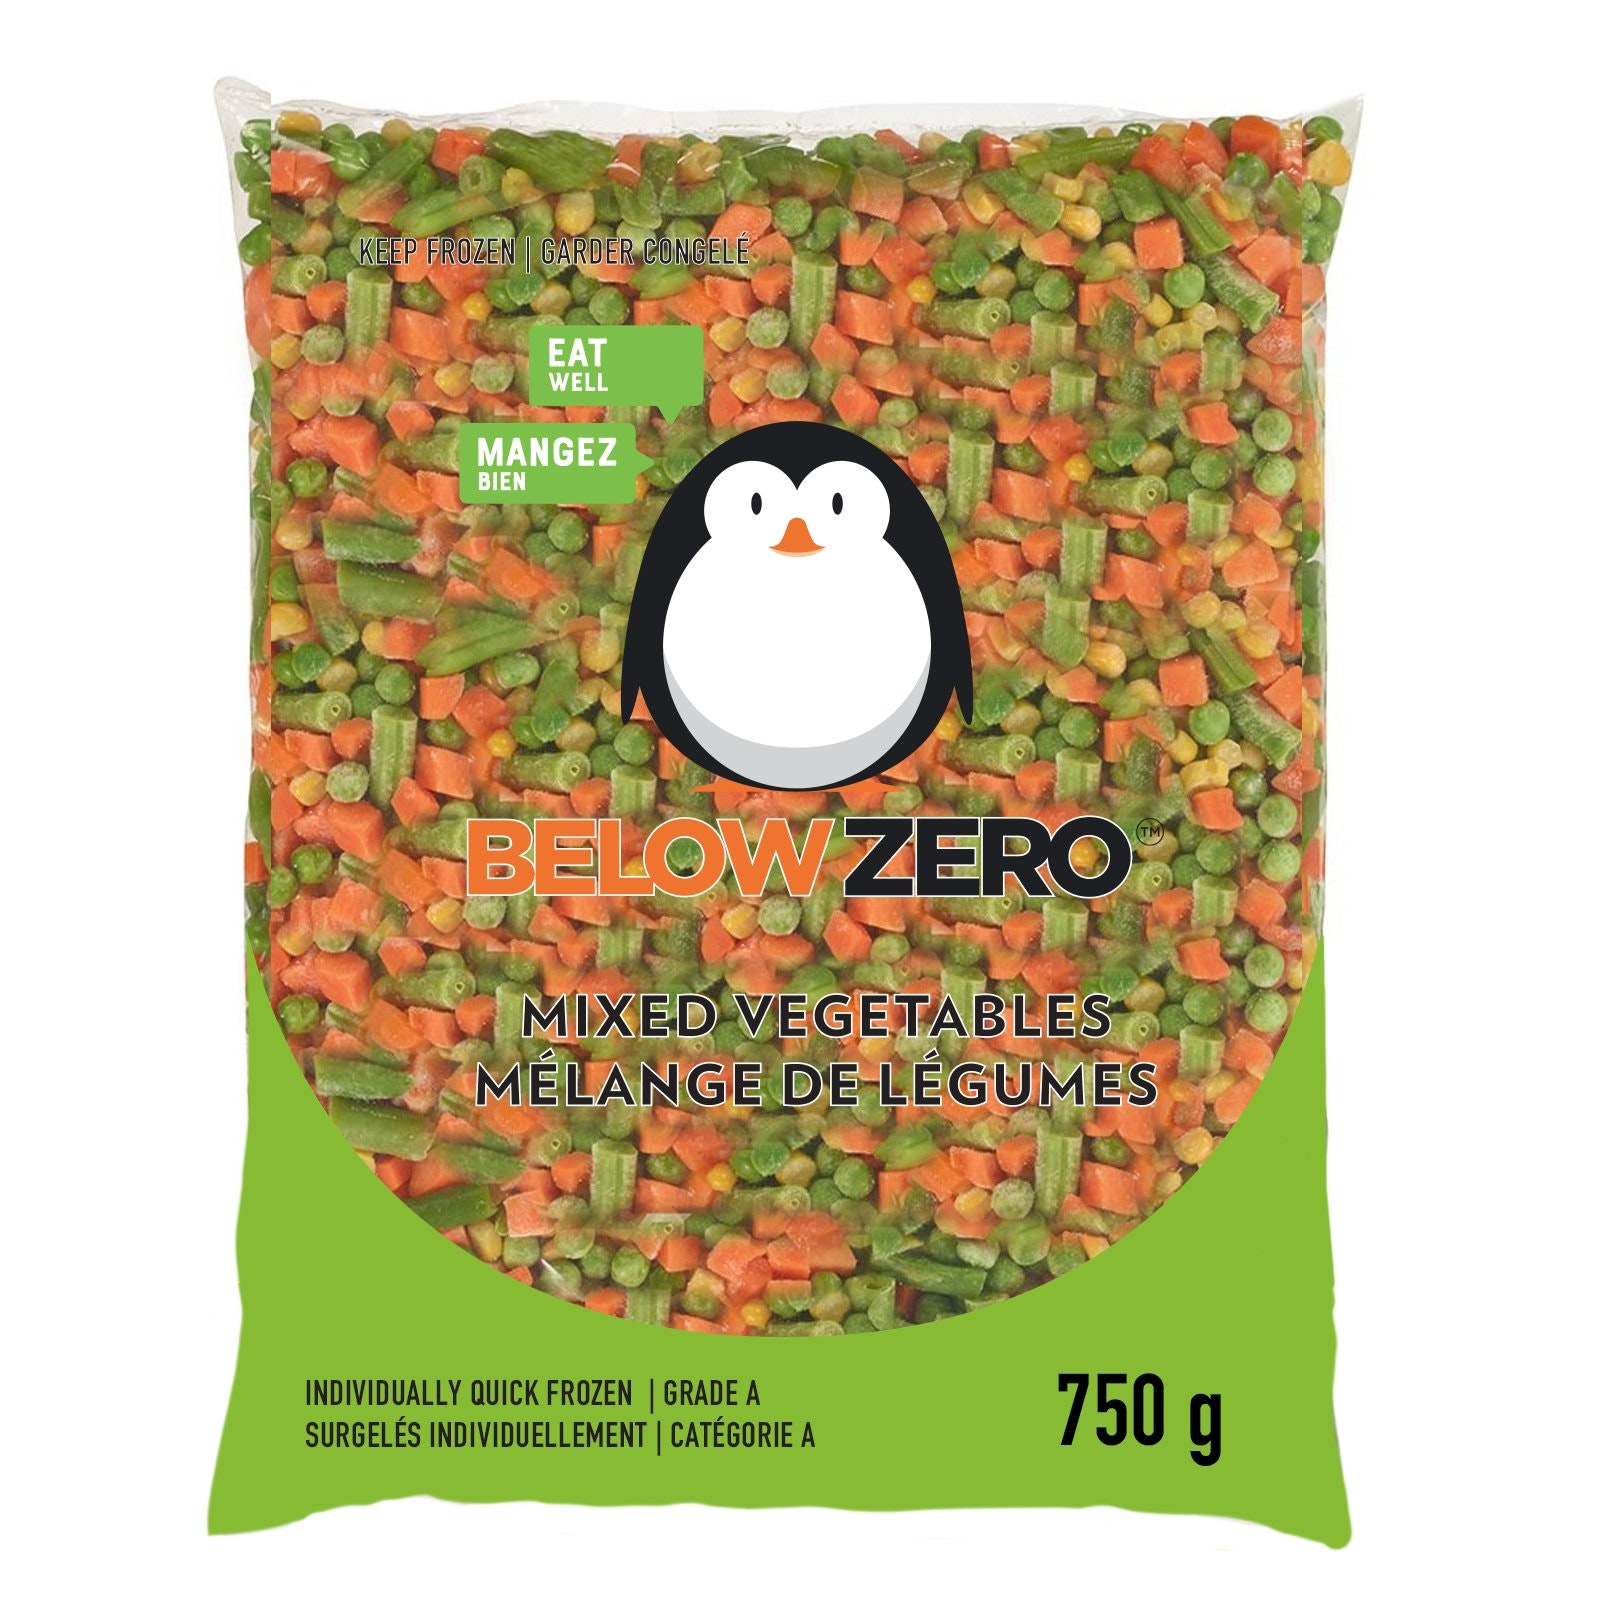 BELOW ZERO Mixed vegetables